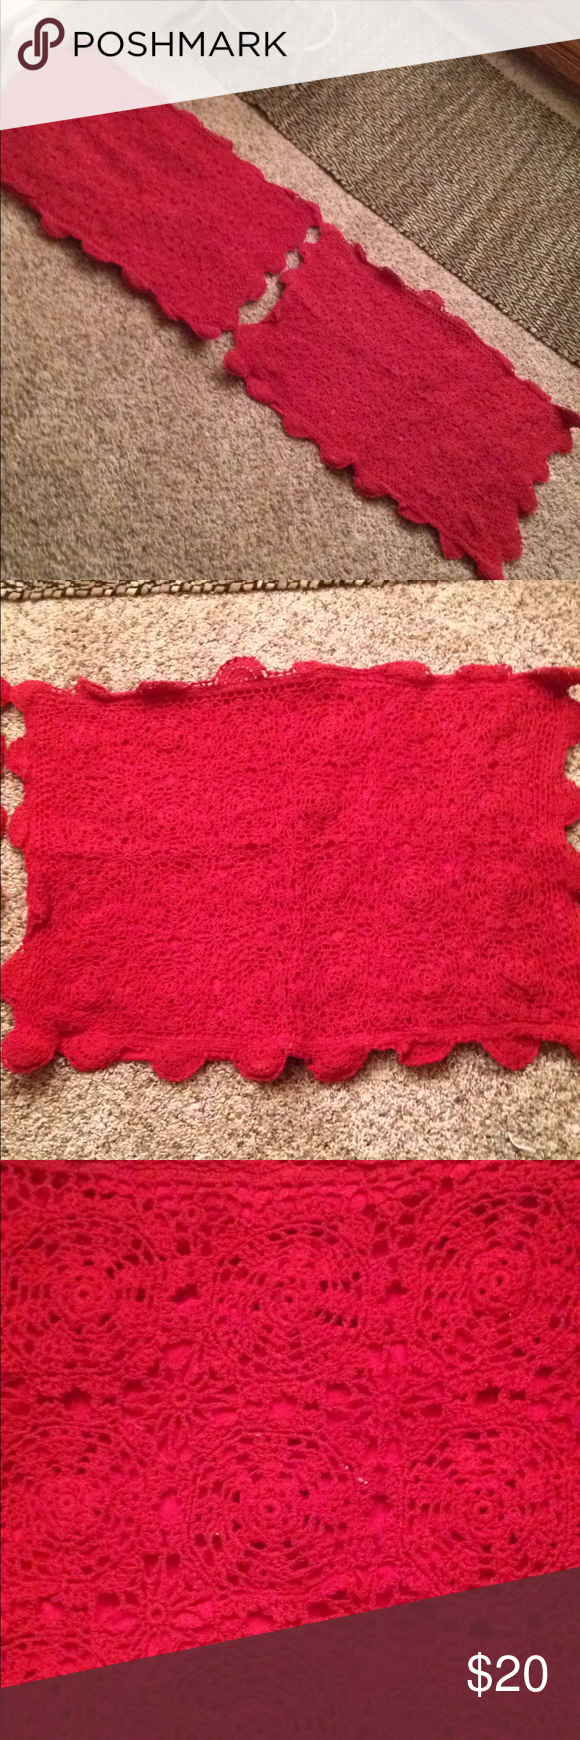 Two red standard size crochet rosette pillow shams Bright red crocheted pillow shams scallop edges.  Vintage cotton.  Great condition see pics.  Standard size.  Great for holidays. Bedding Pillows #pillowedgingcrochet